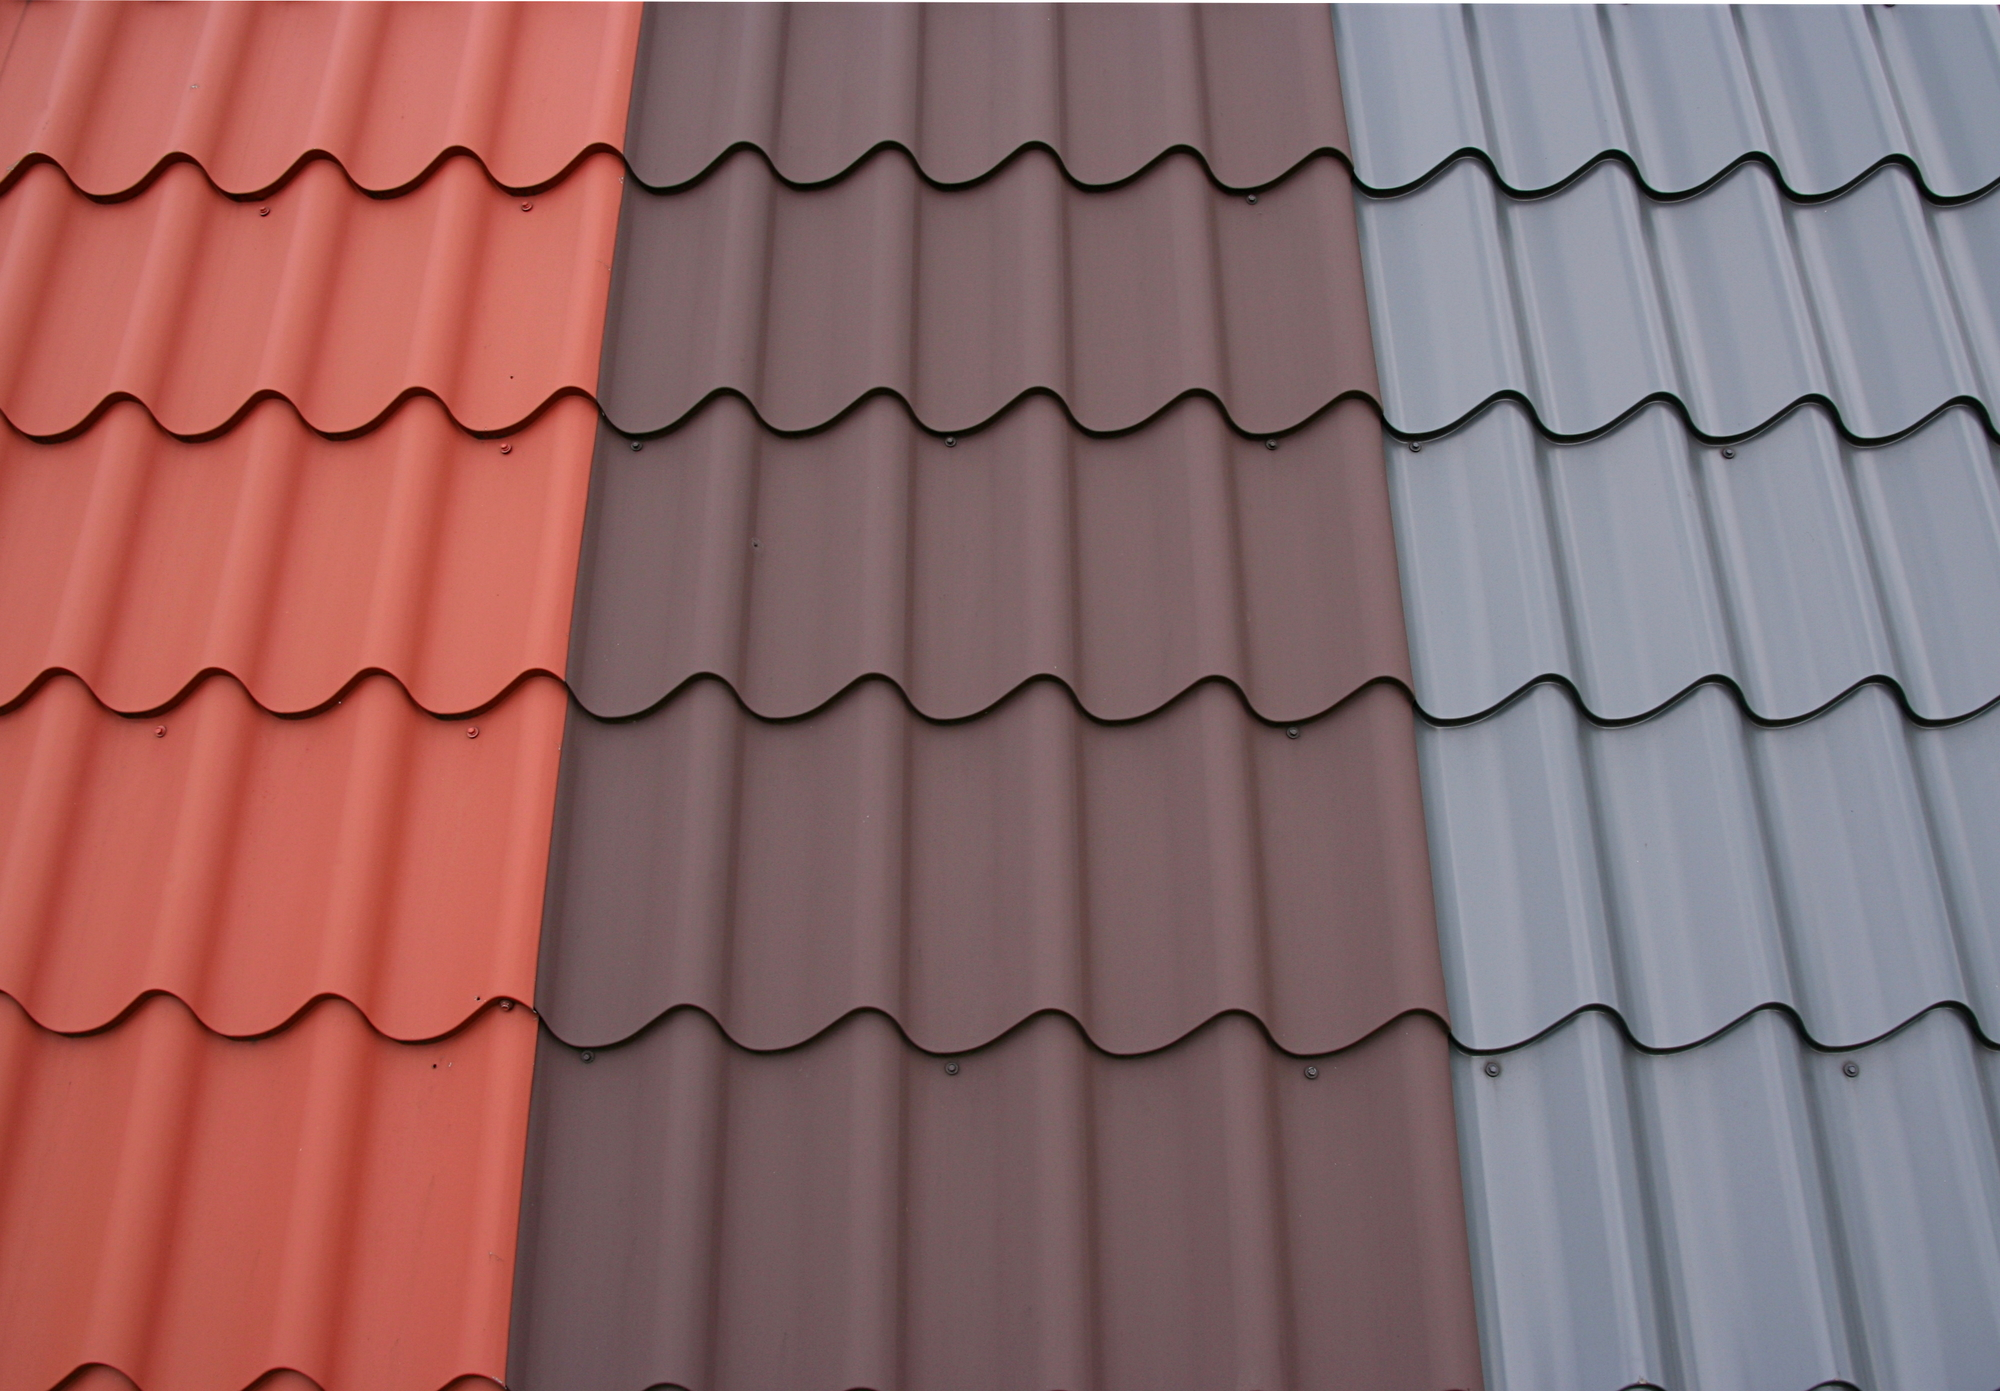 Get to know your roofing materials hibbs contracting for Most expensive roof material